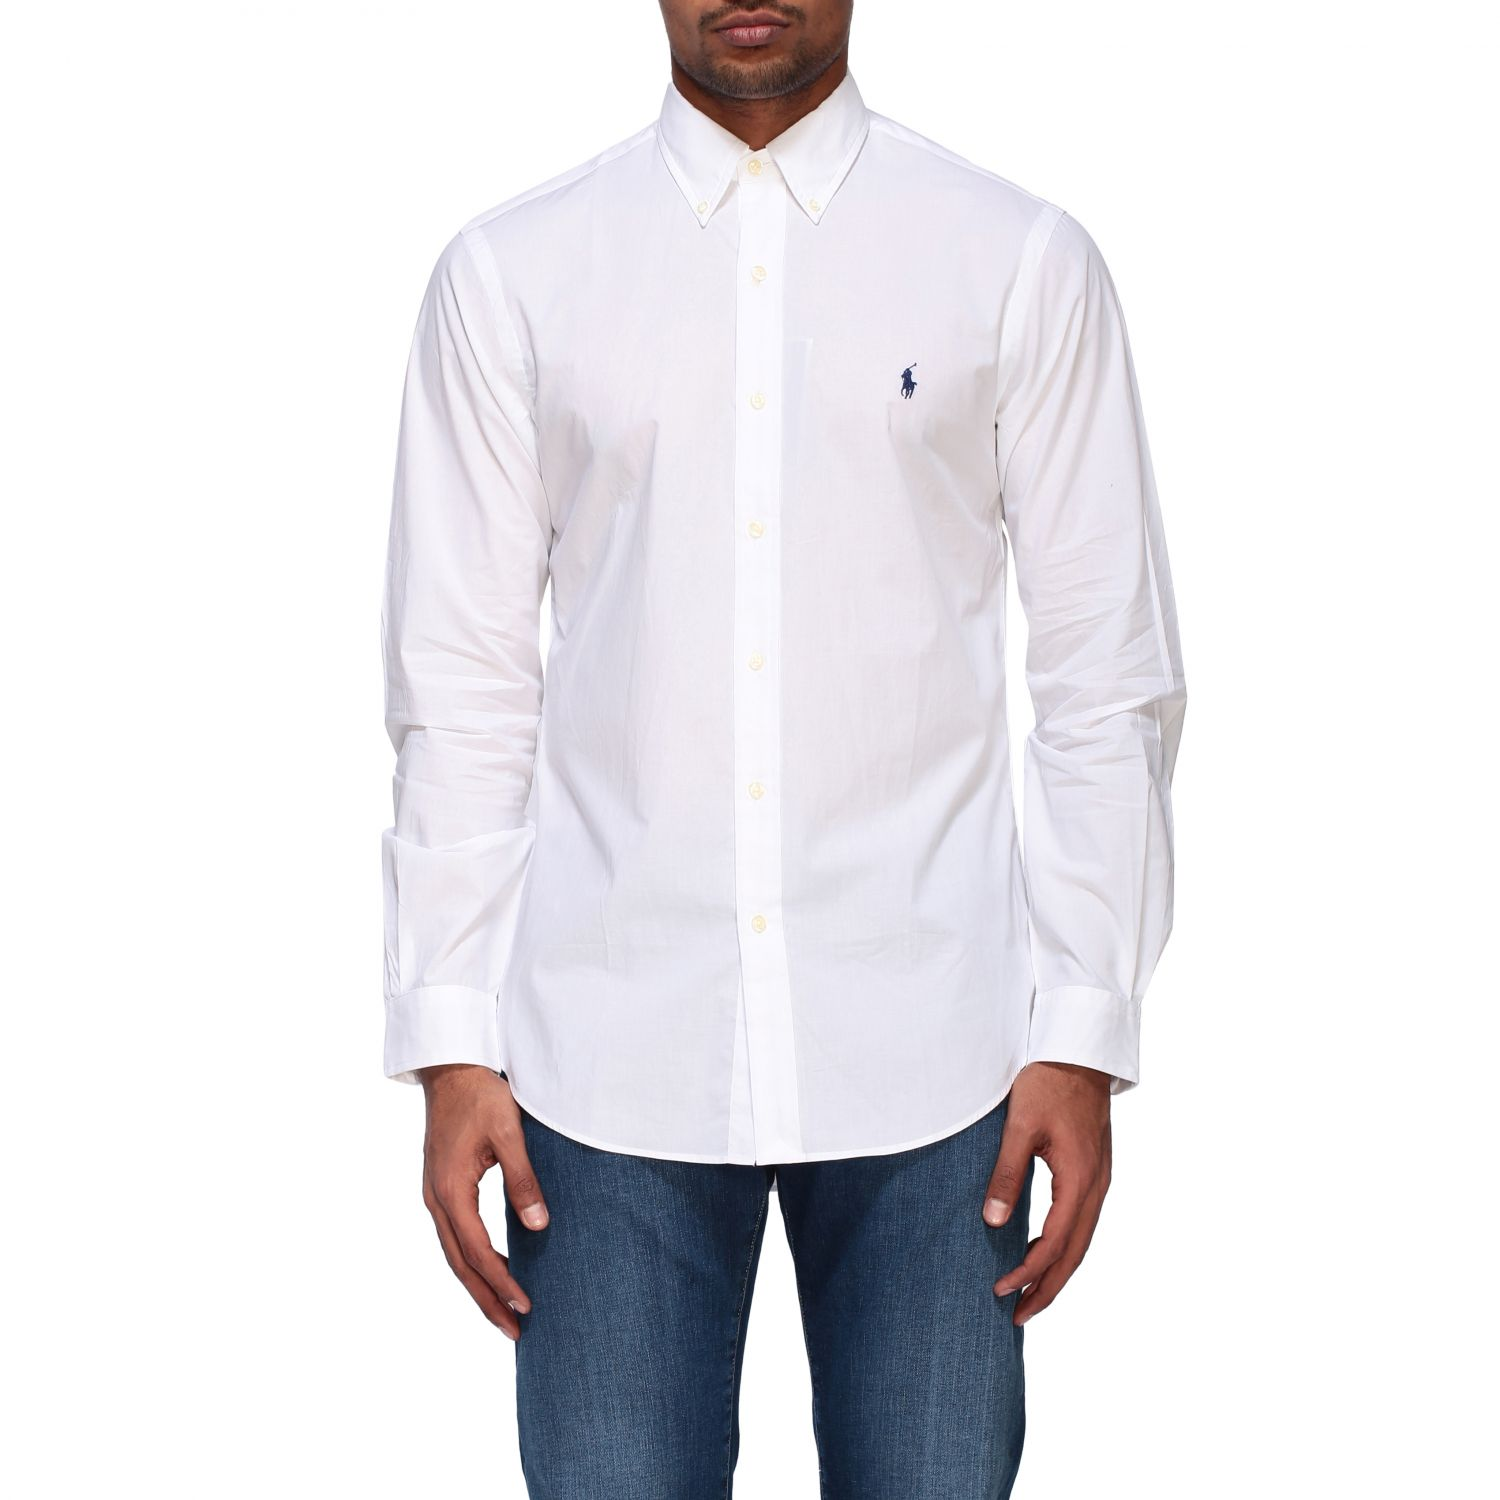 Camicia Polo Ralph Lauren in popeline con collo button down bianco 1